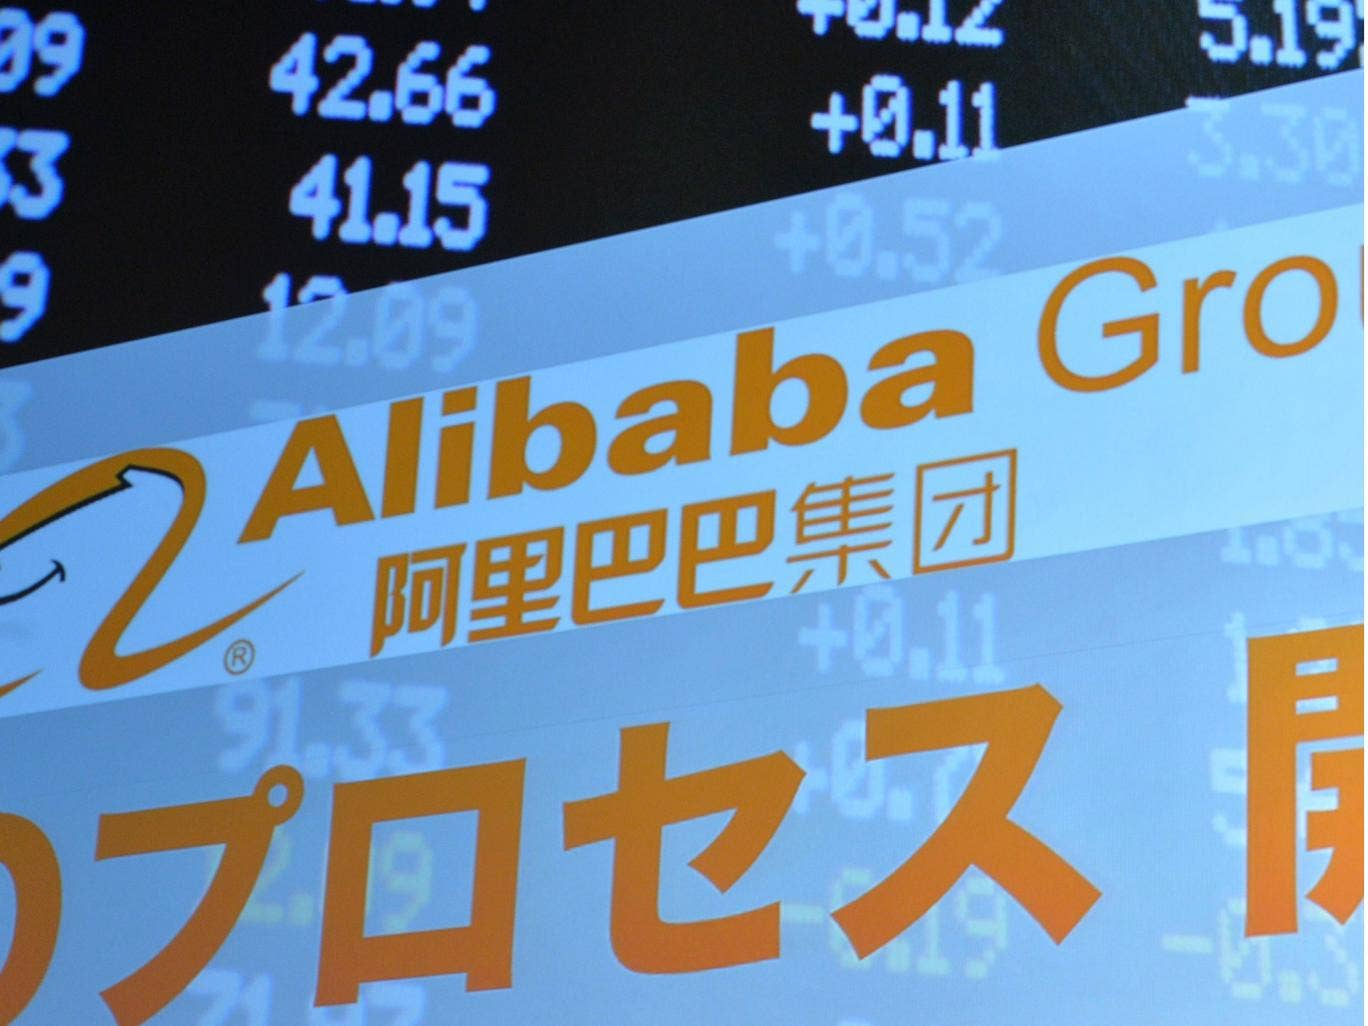 Just over two years ago Alibaba was under US scrutiny because so many counterfeiters were selling goods on its website.